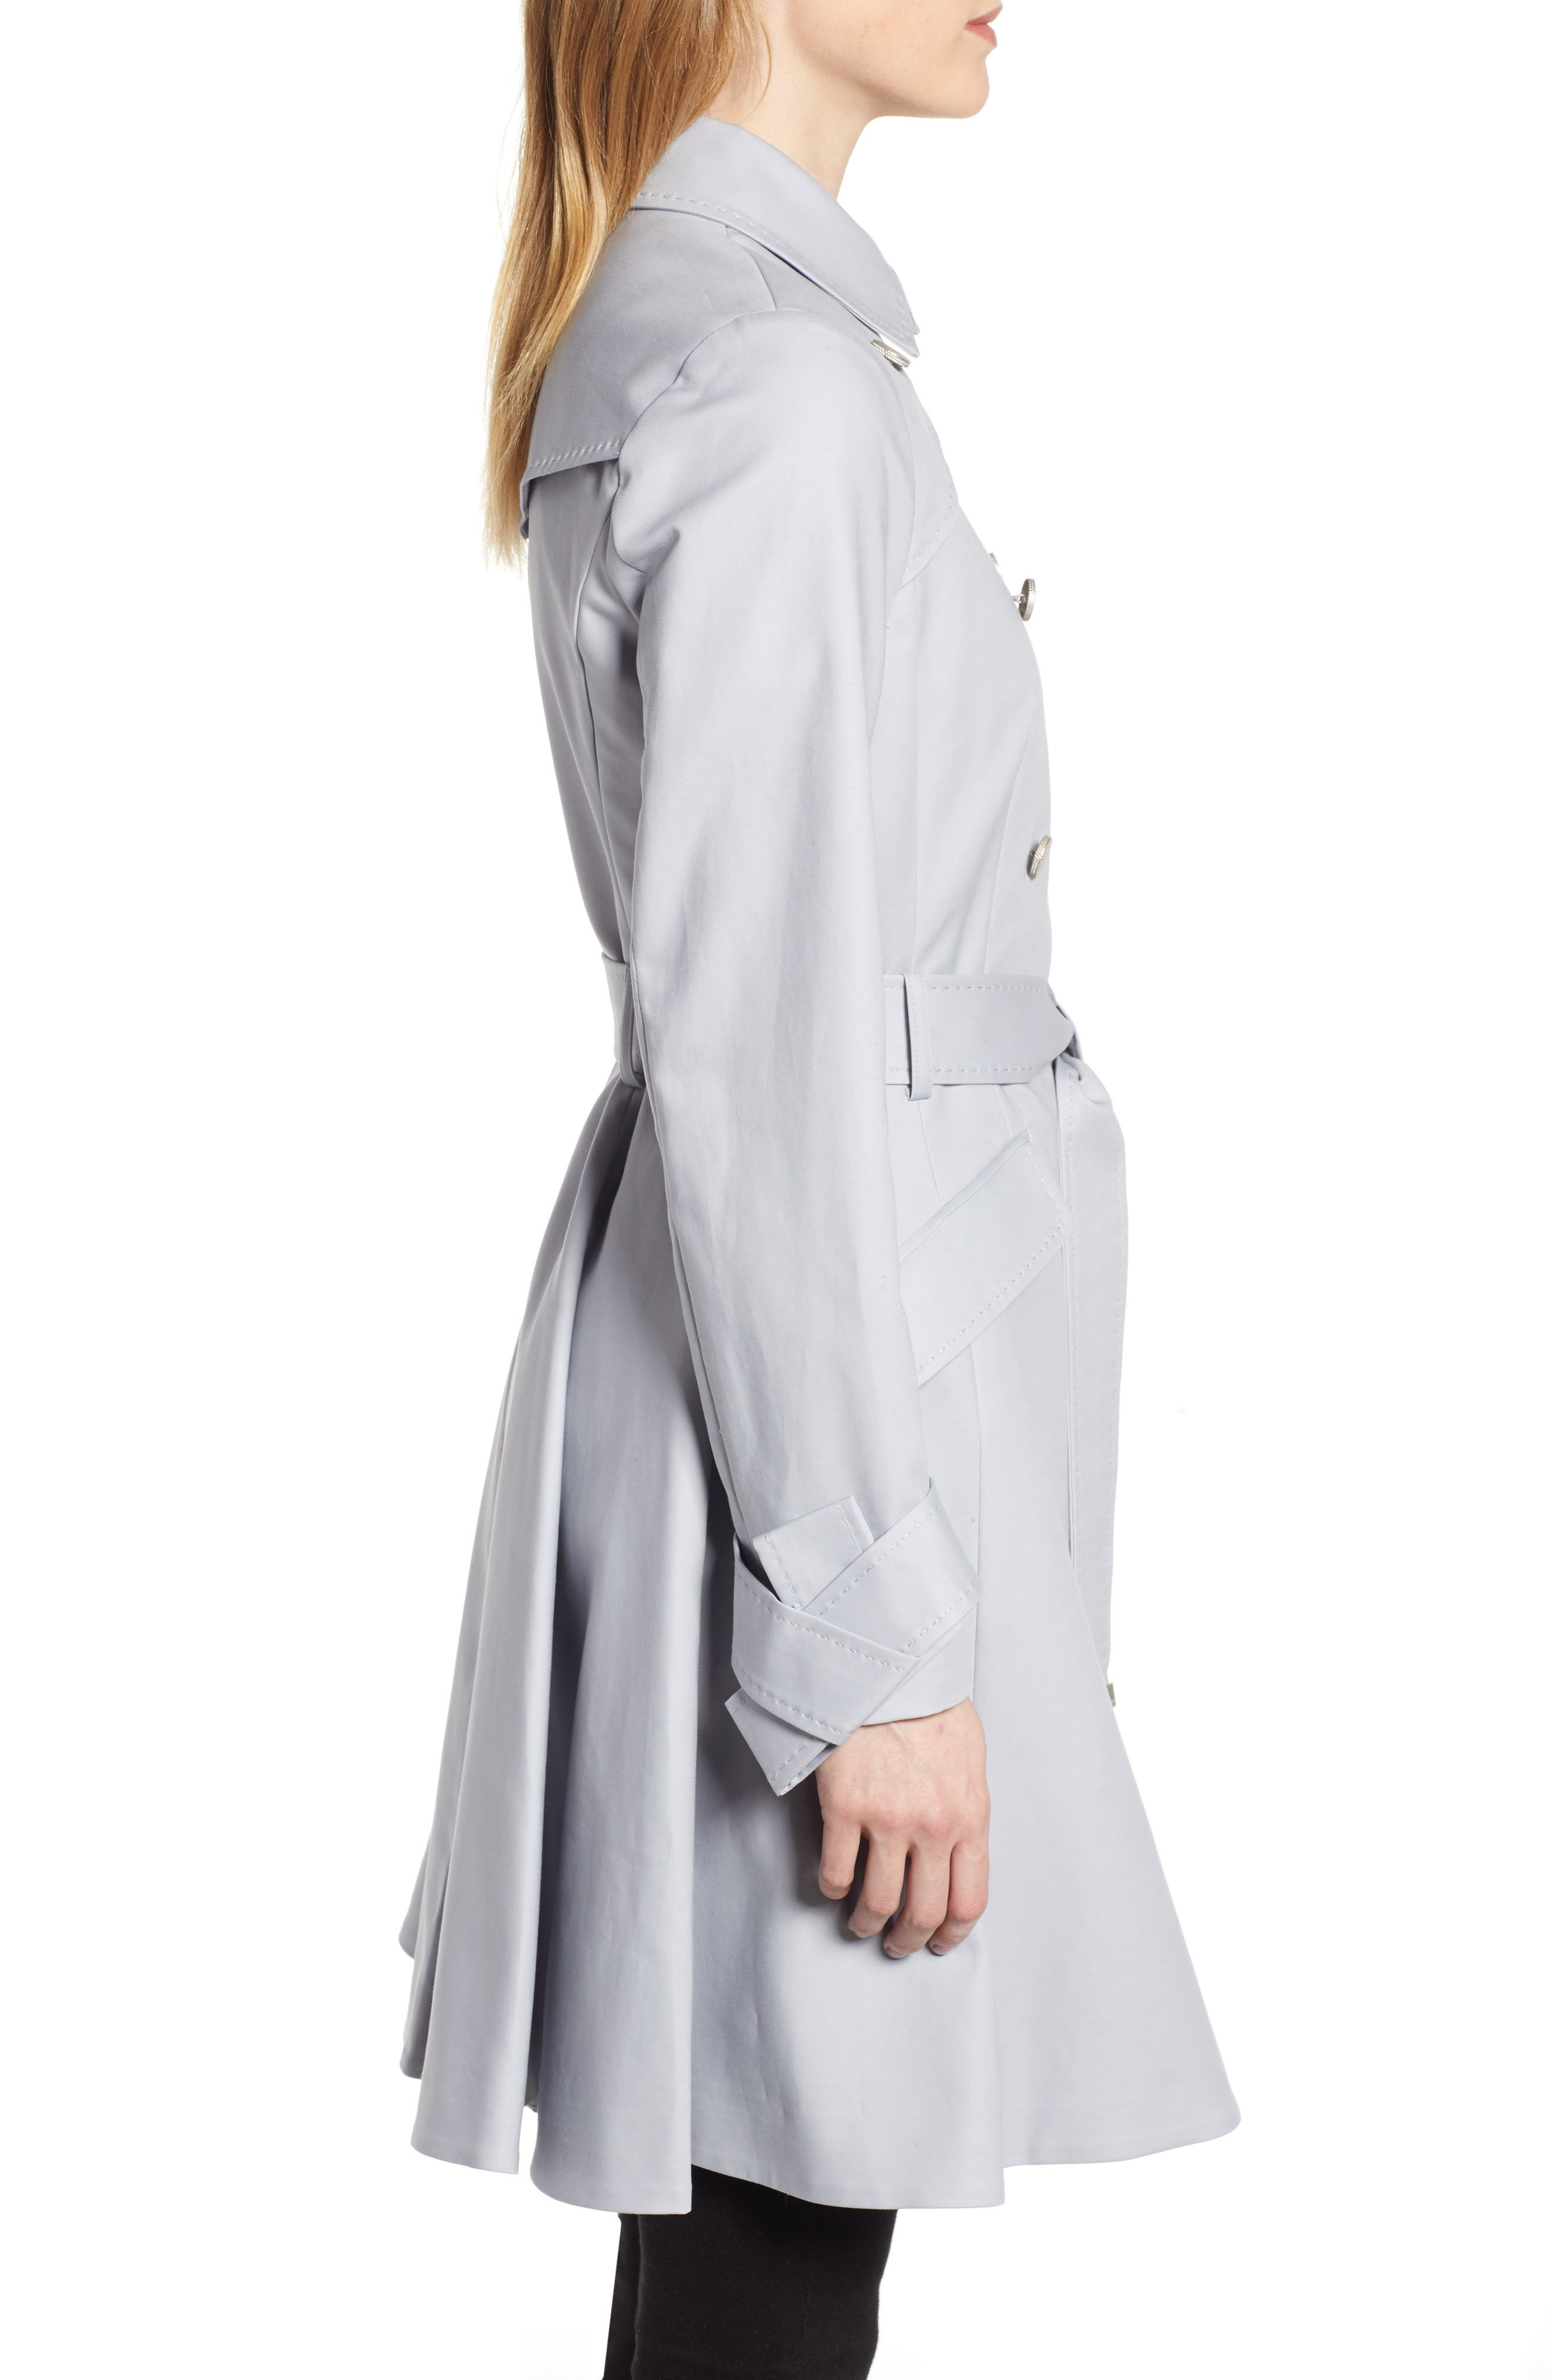 TED BAKER LONDON, Tie Cuff Detail Trench Coat, Alternate thumbnail 4, color, GREY